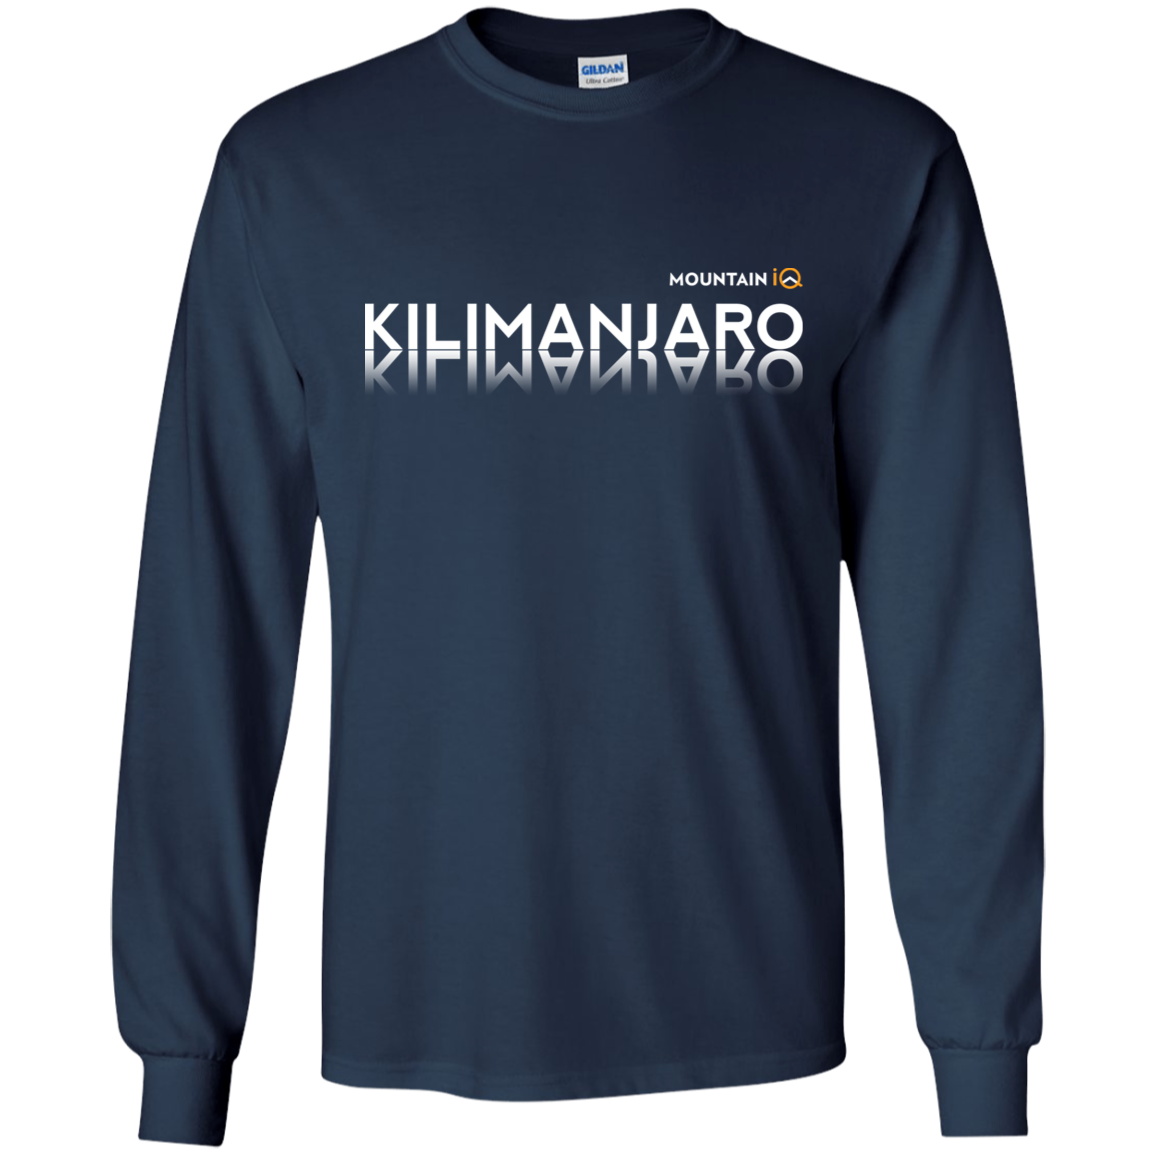 Kilimanjaro Long Sleeve Navy MountainIQ